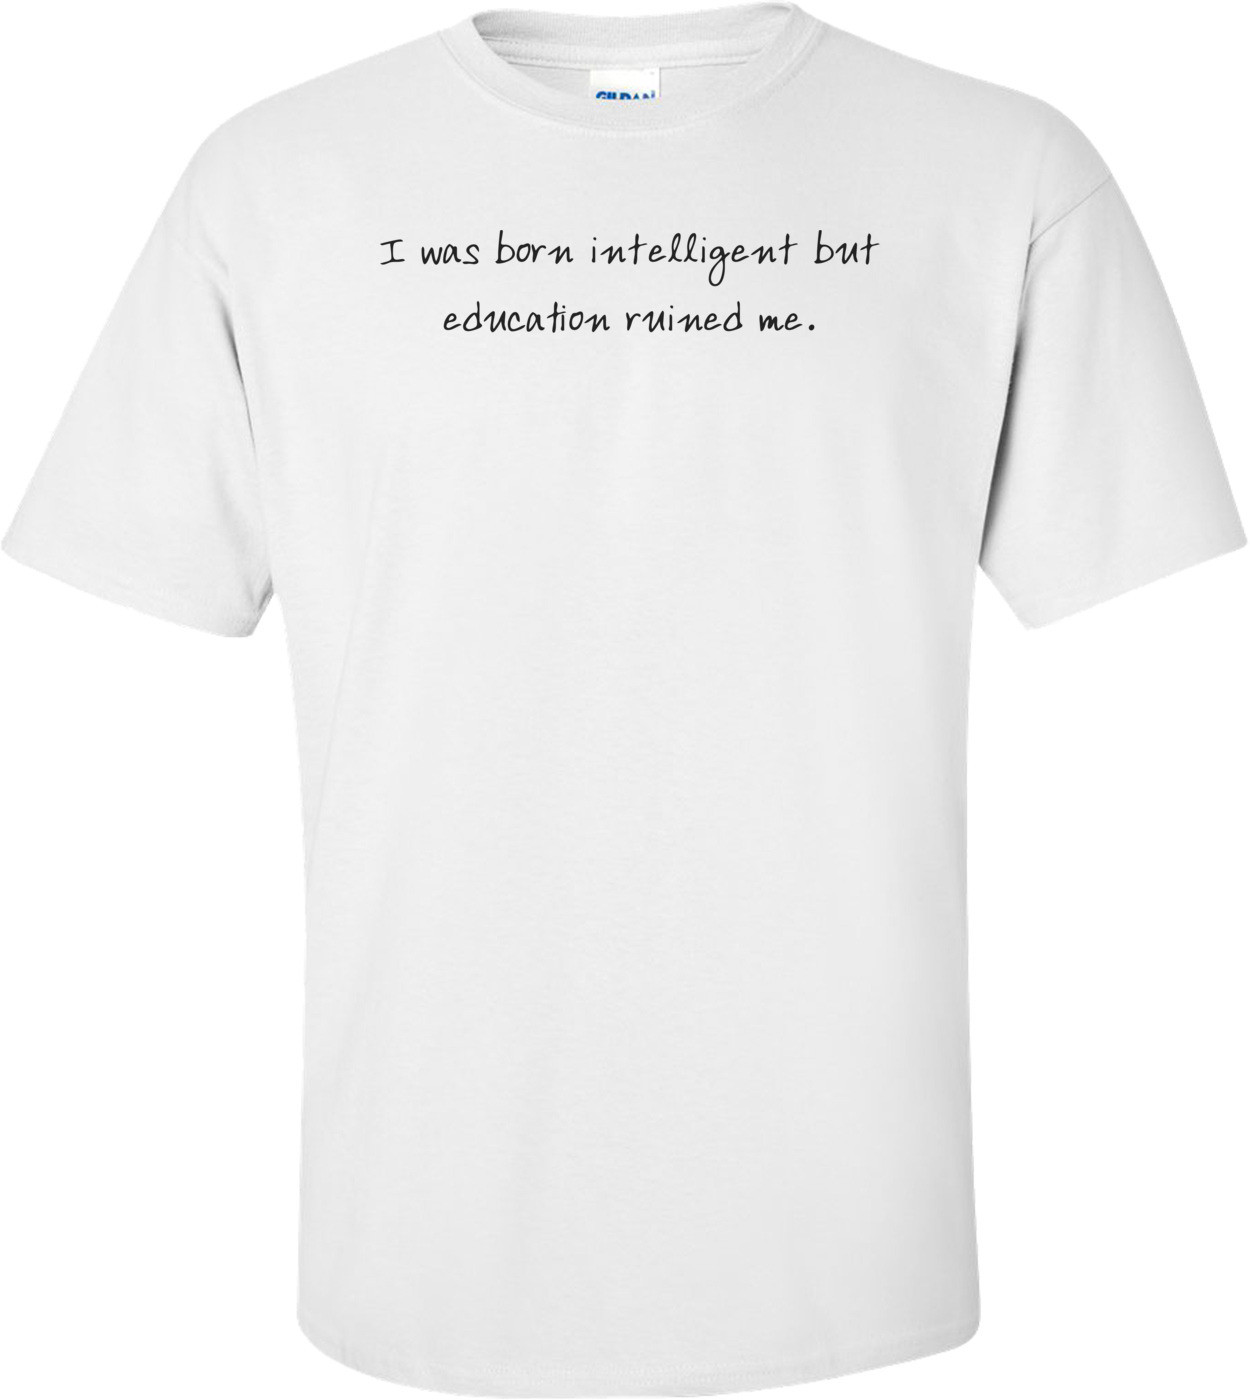 I was born intelligent but education ruined me. Shirt